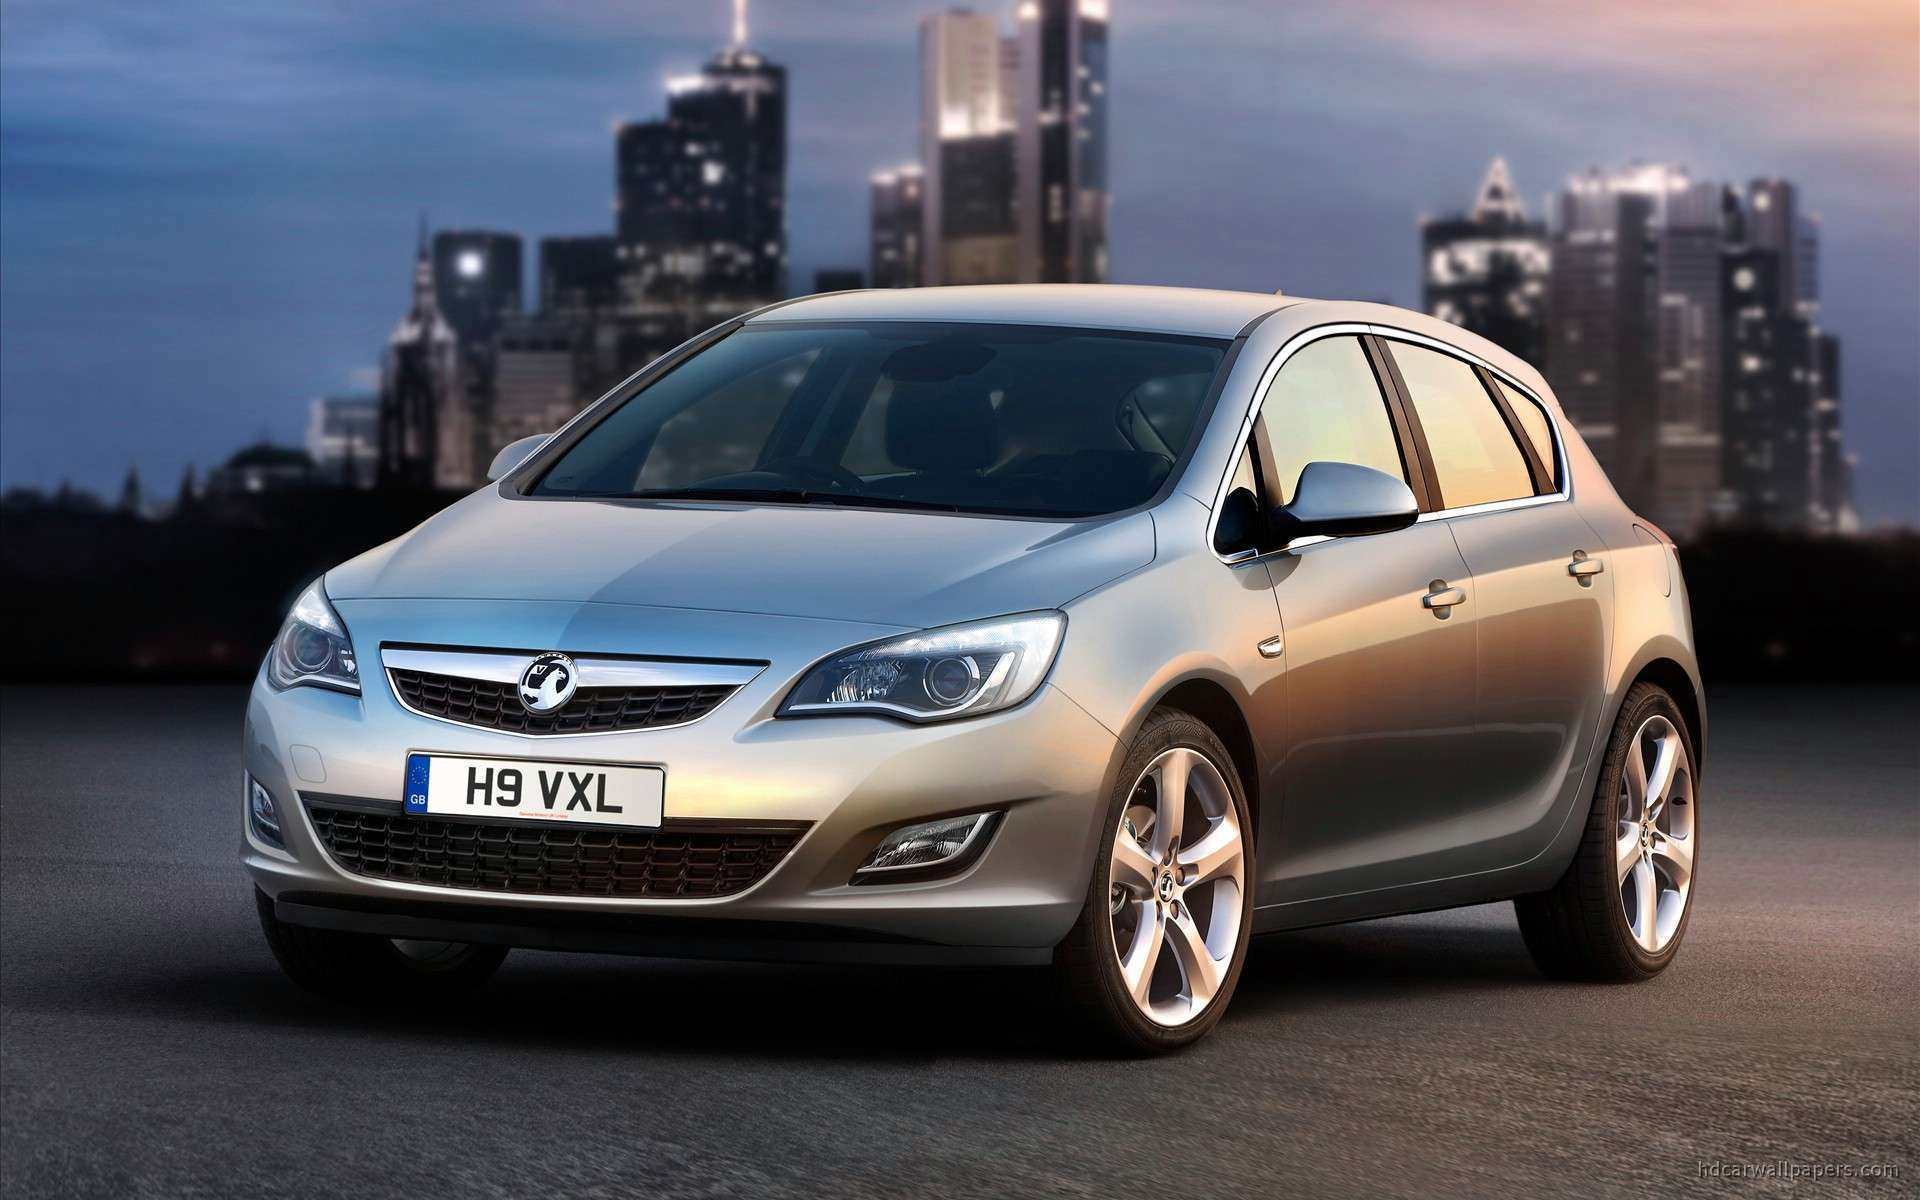 2010 vauxhall astra hd wallpapers hd car wallpapers. Black Bedroom Furniture Sets. Home Design Ideas